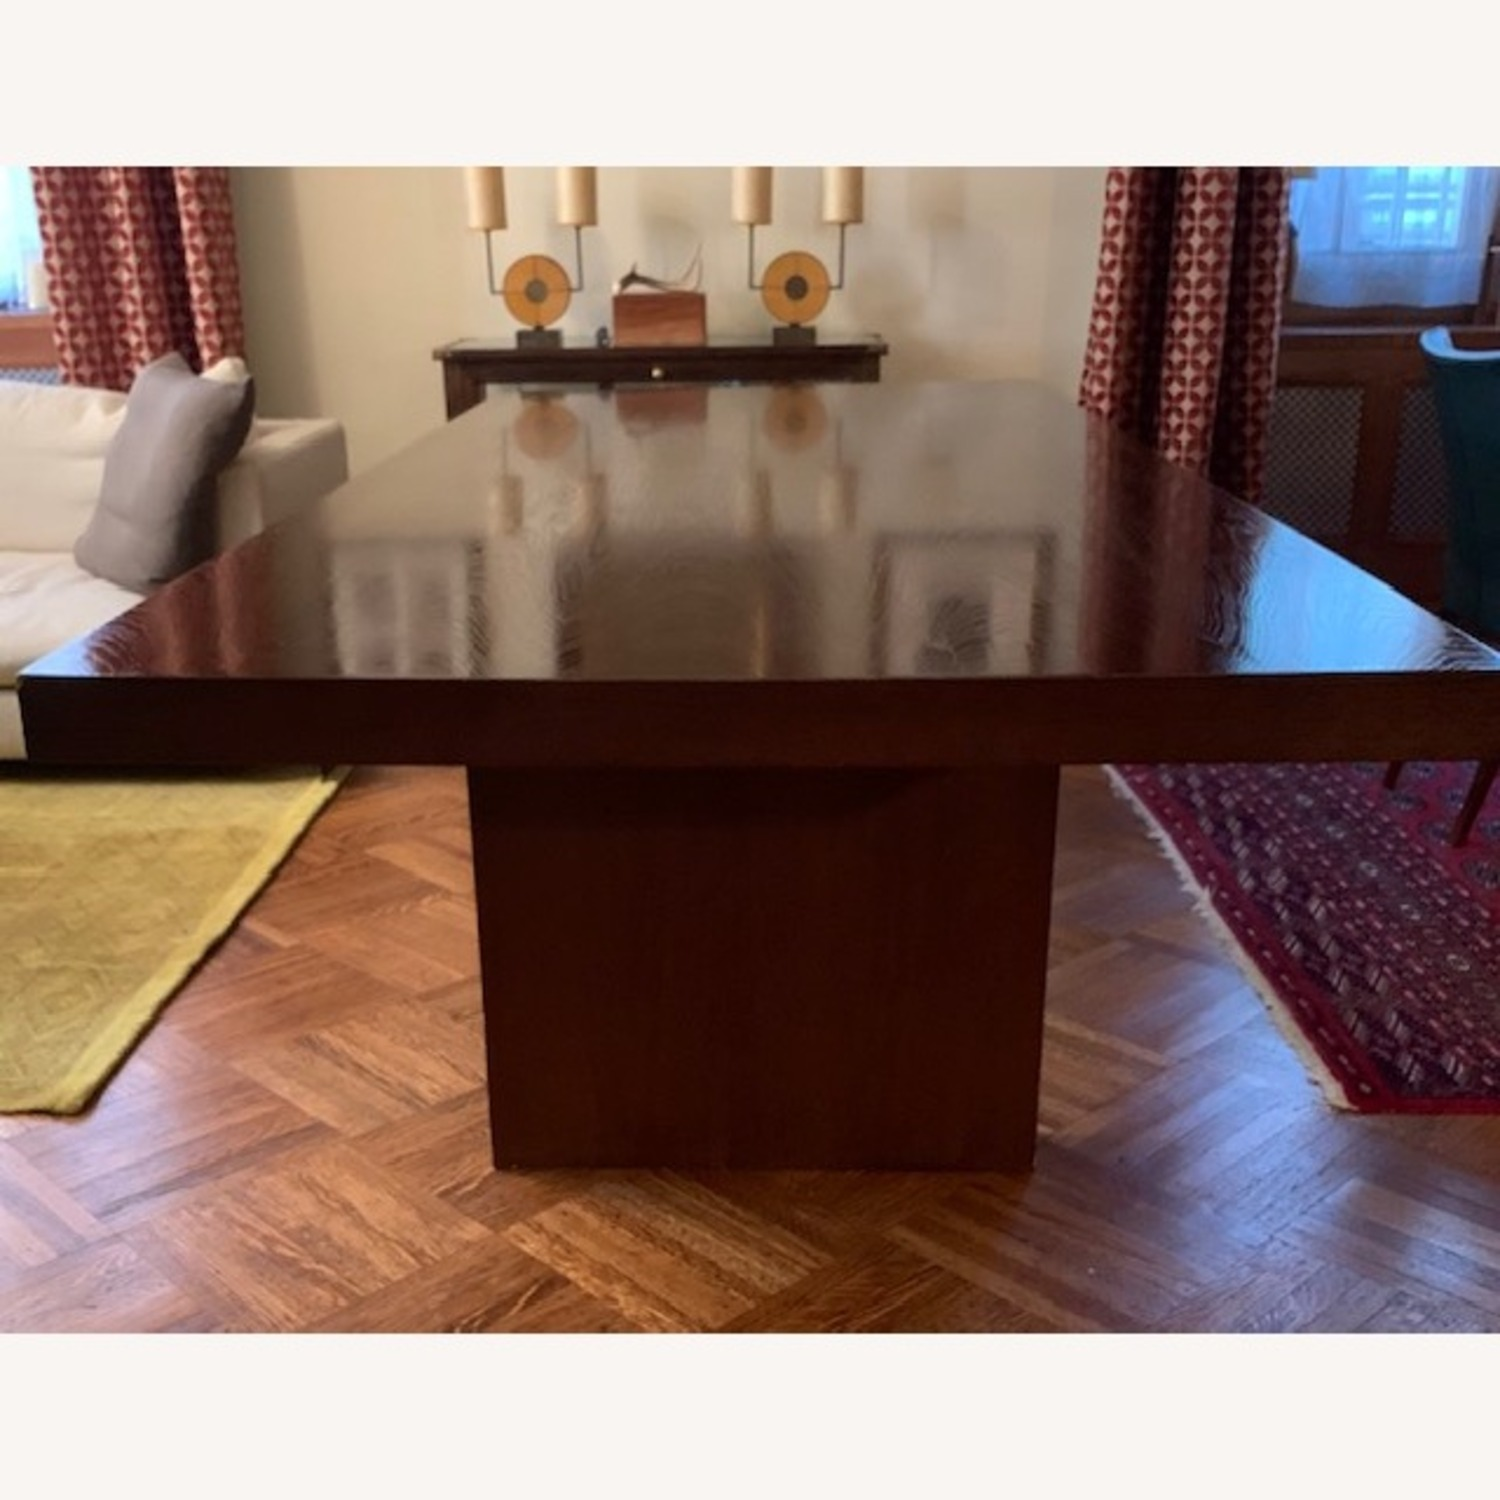 Christian Liaigre Dining Table from Paris - image-1